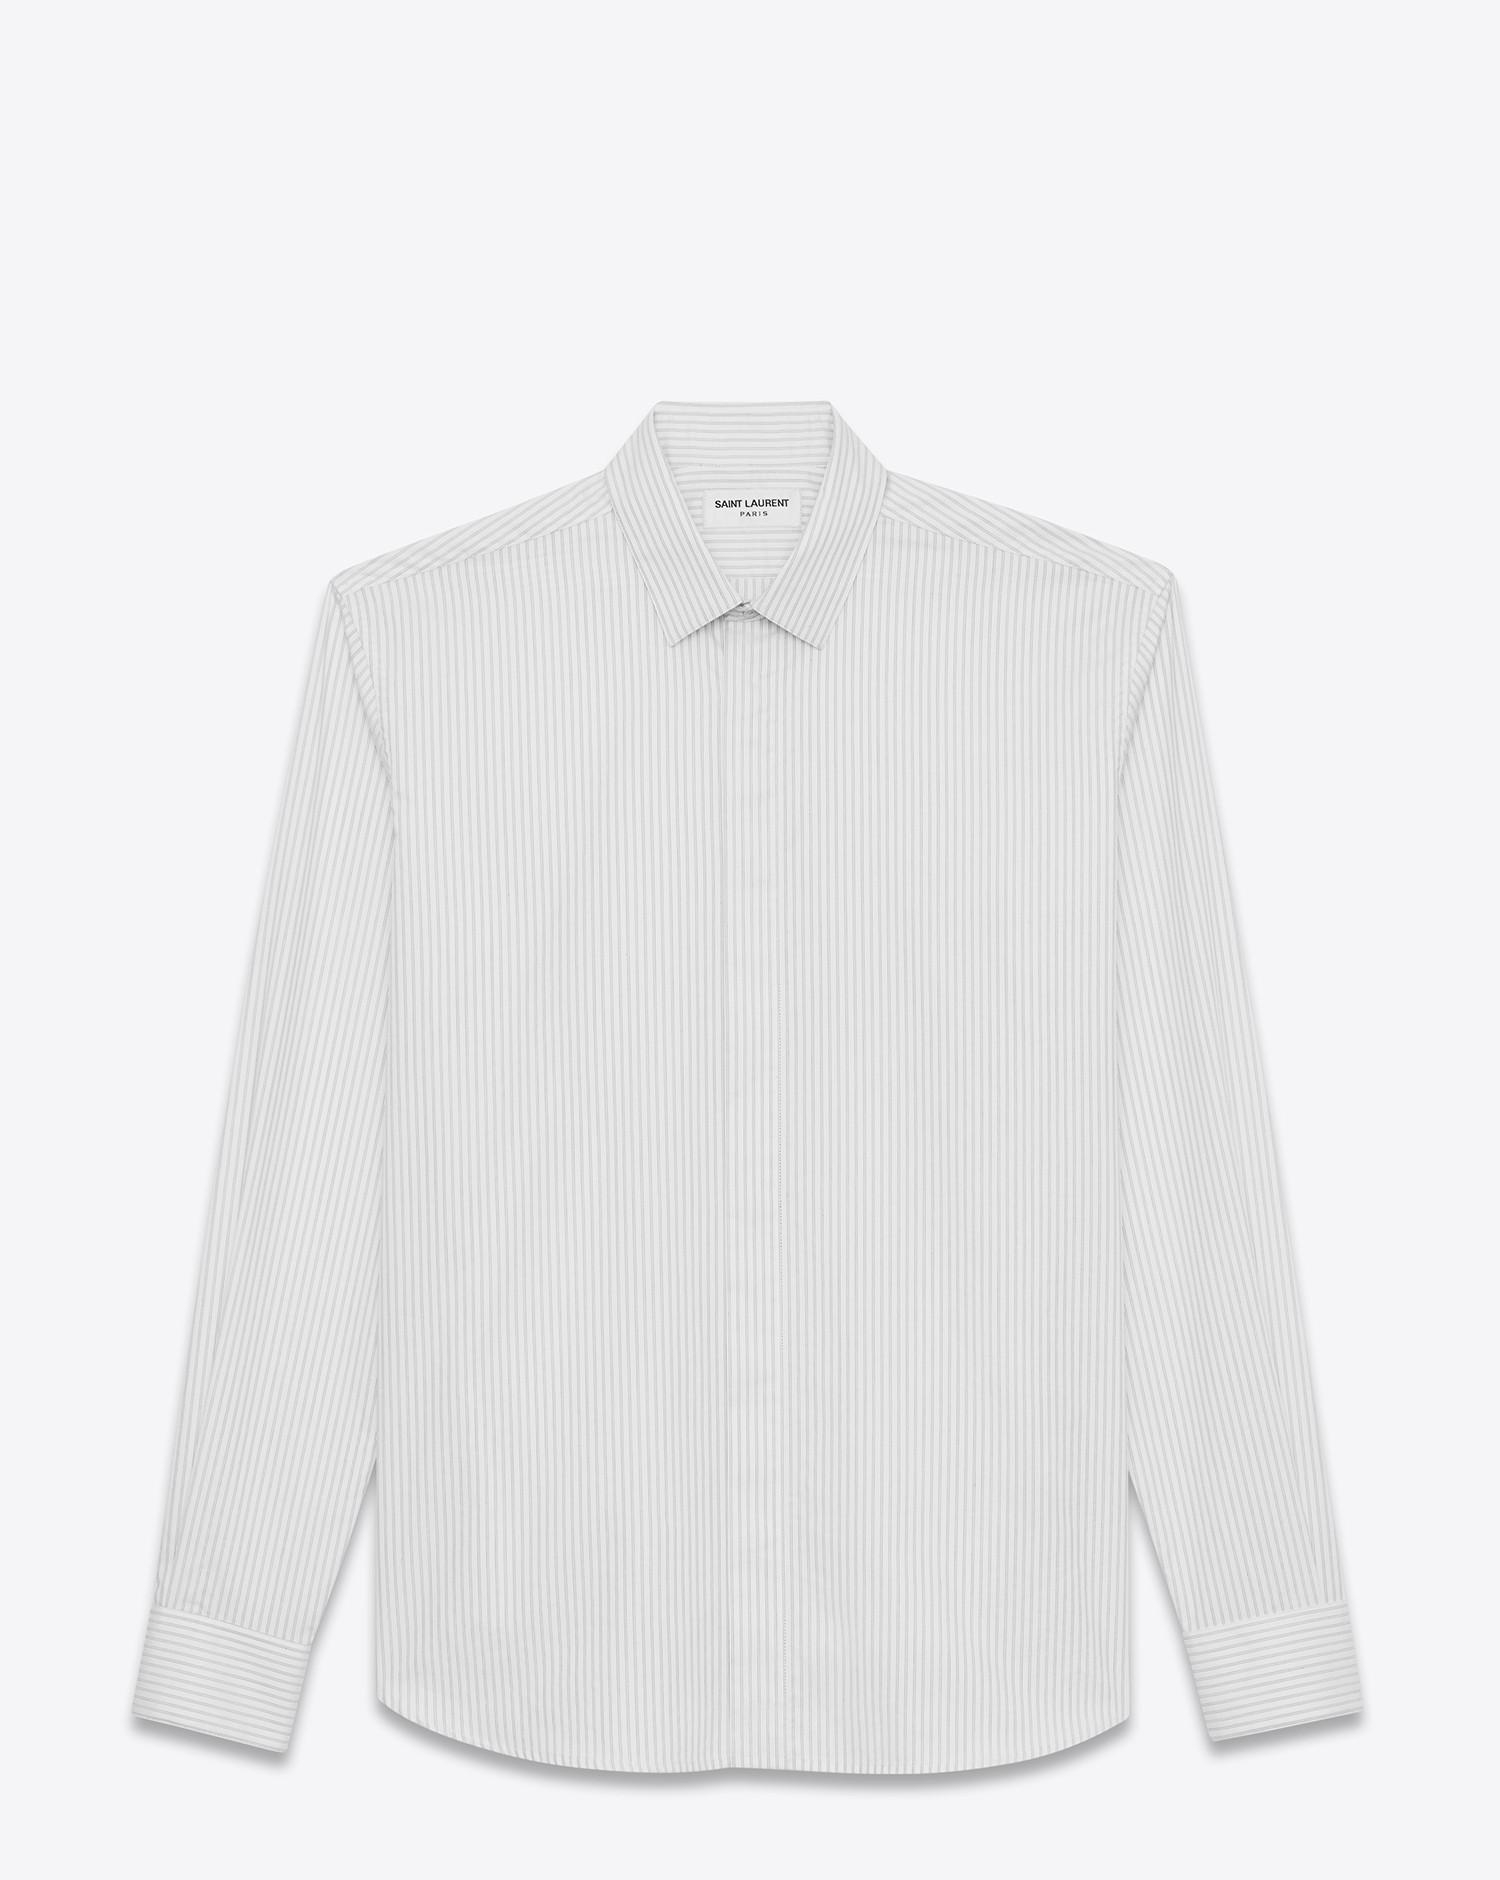 Discount From China classic shirt - White Saint Laurent Cheap Very Cheap Outlet Low Price Fee Shipping Many Kinds Of For Sale For Sale Cheap Real 2EoSsy